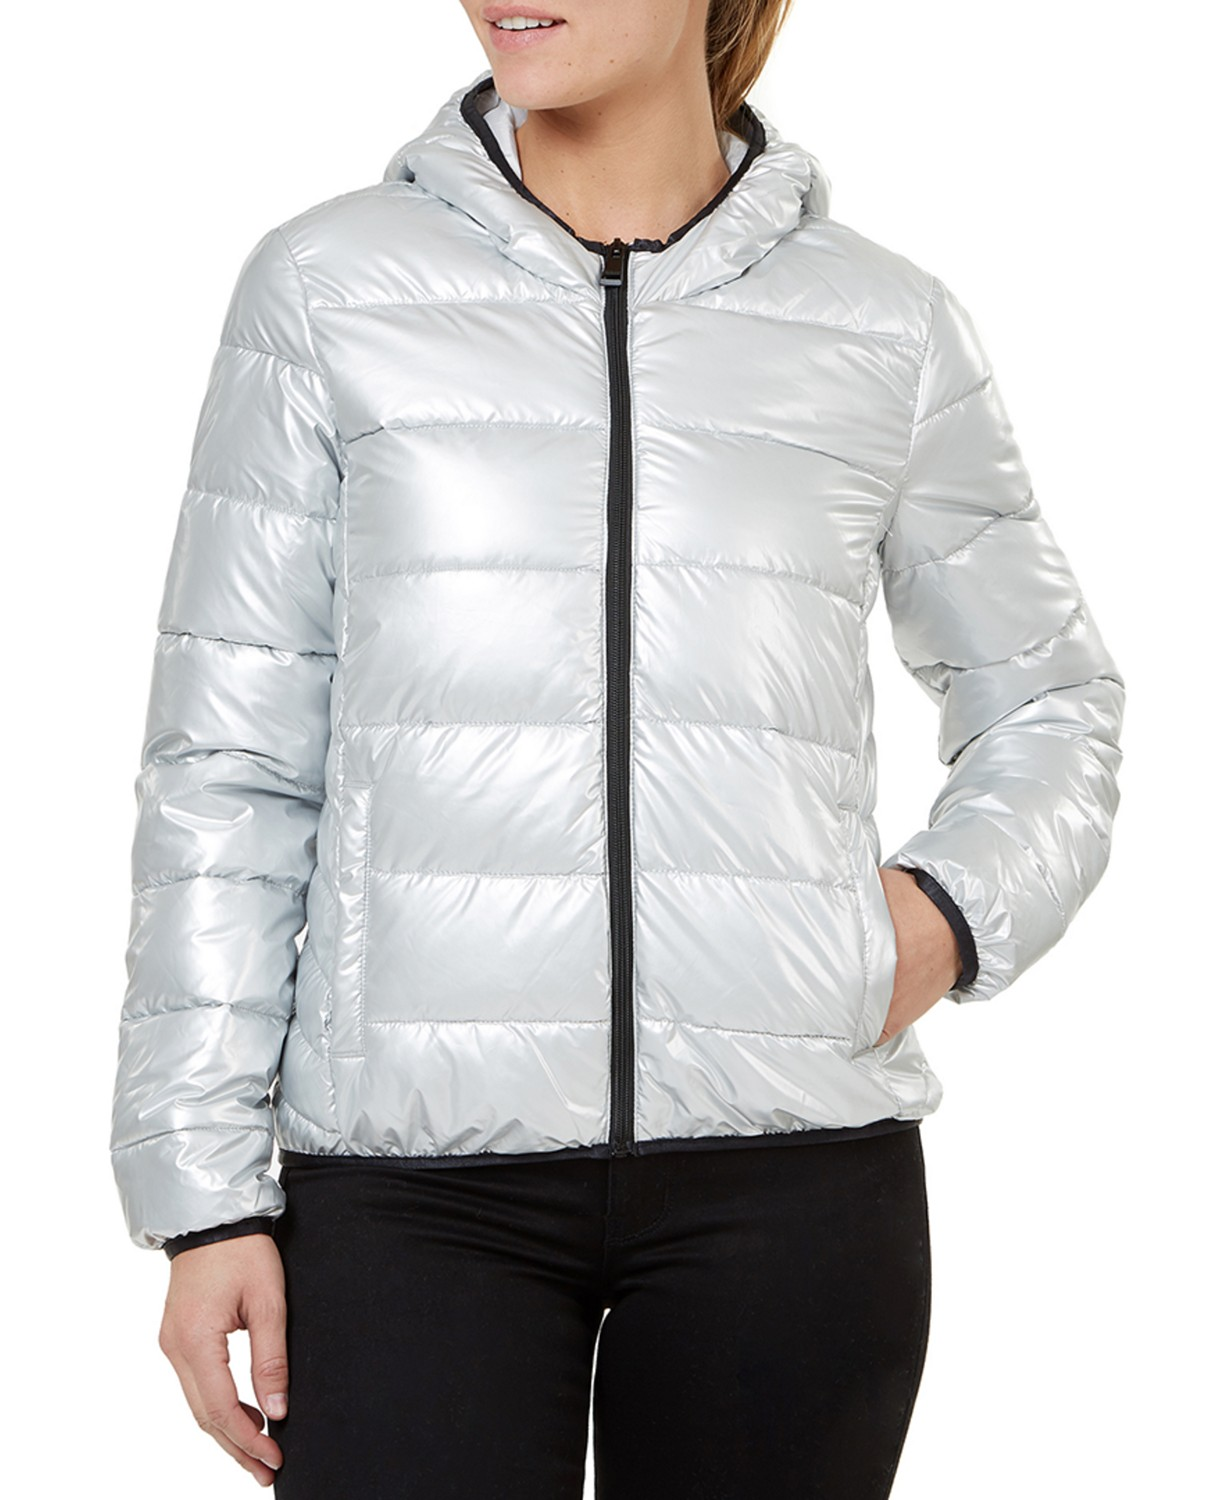 Quilted Hooded Packable Jacket $19.99 (80% off)